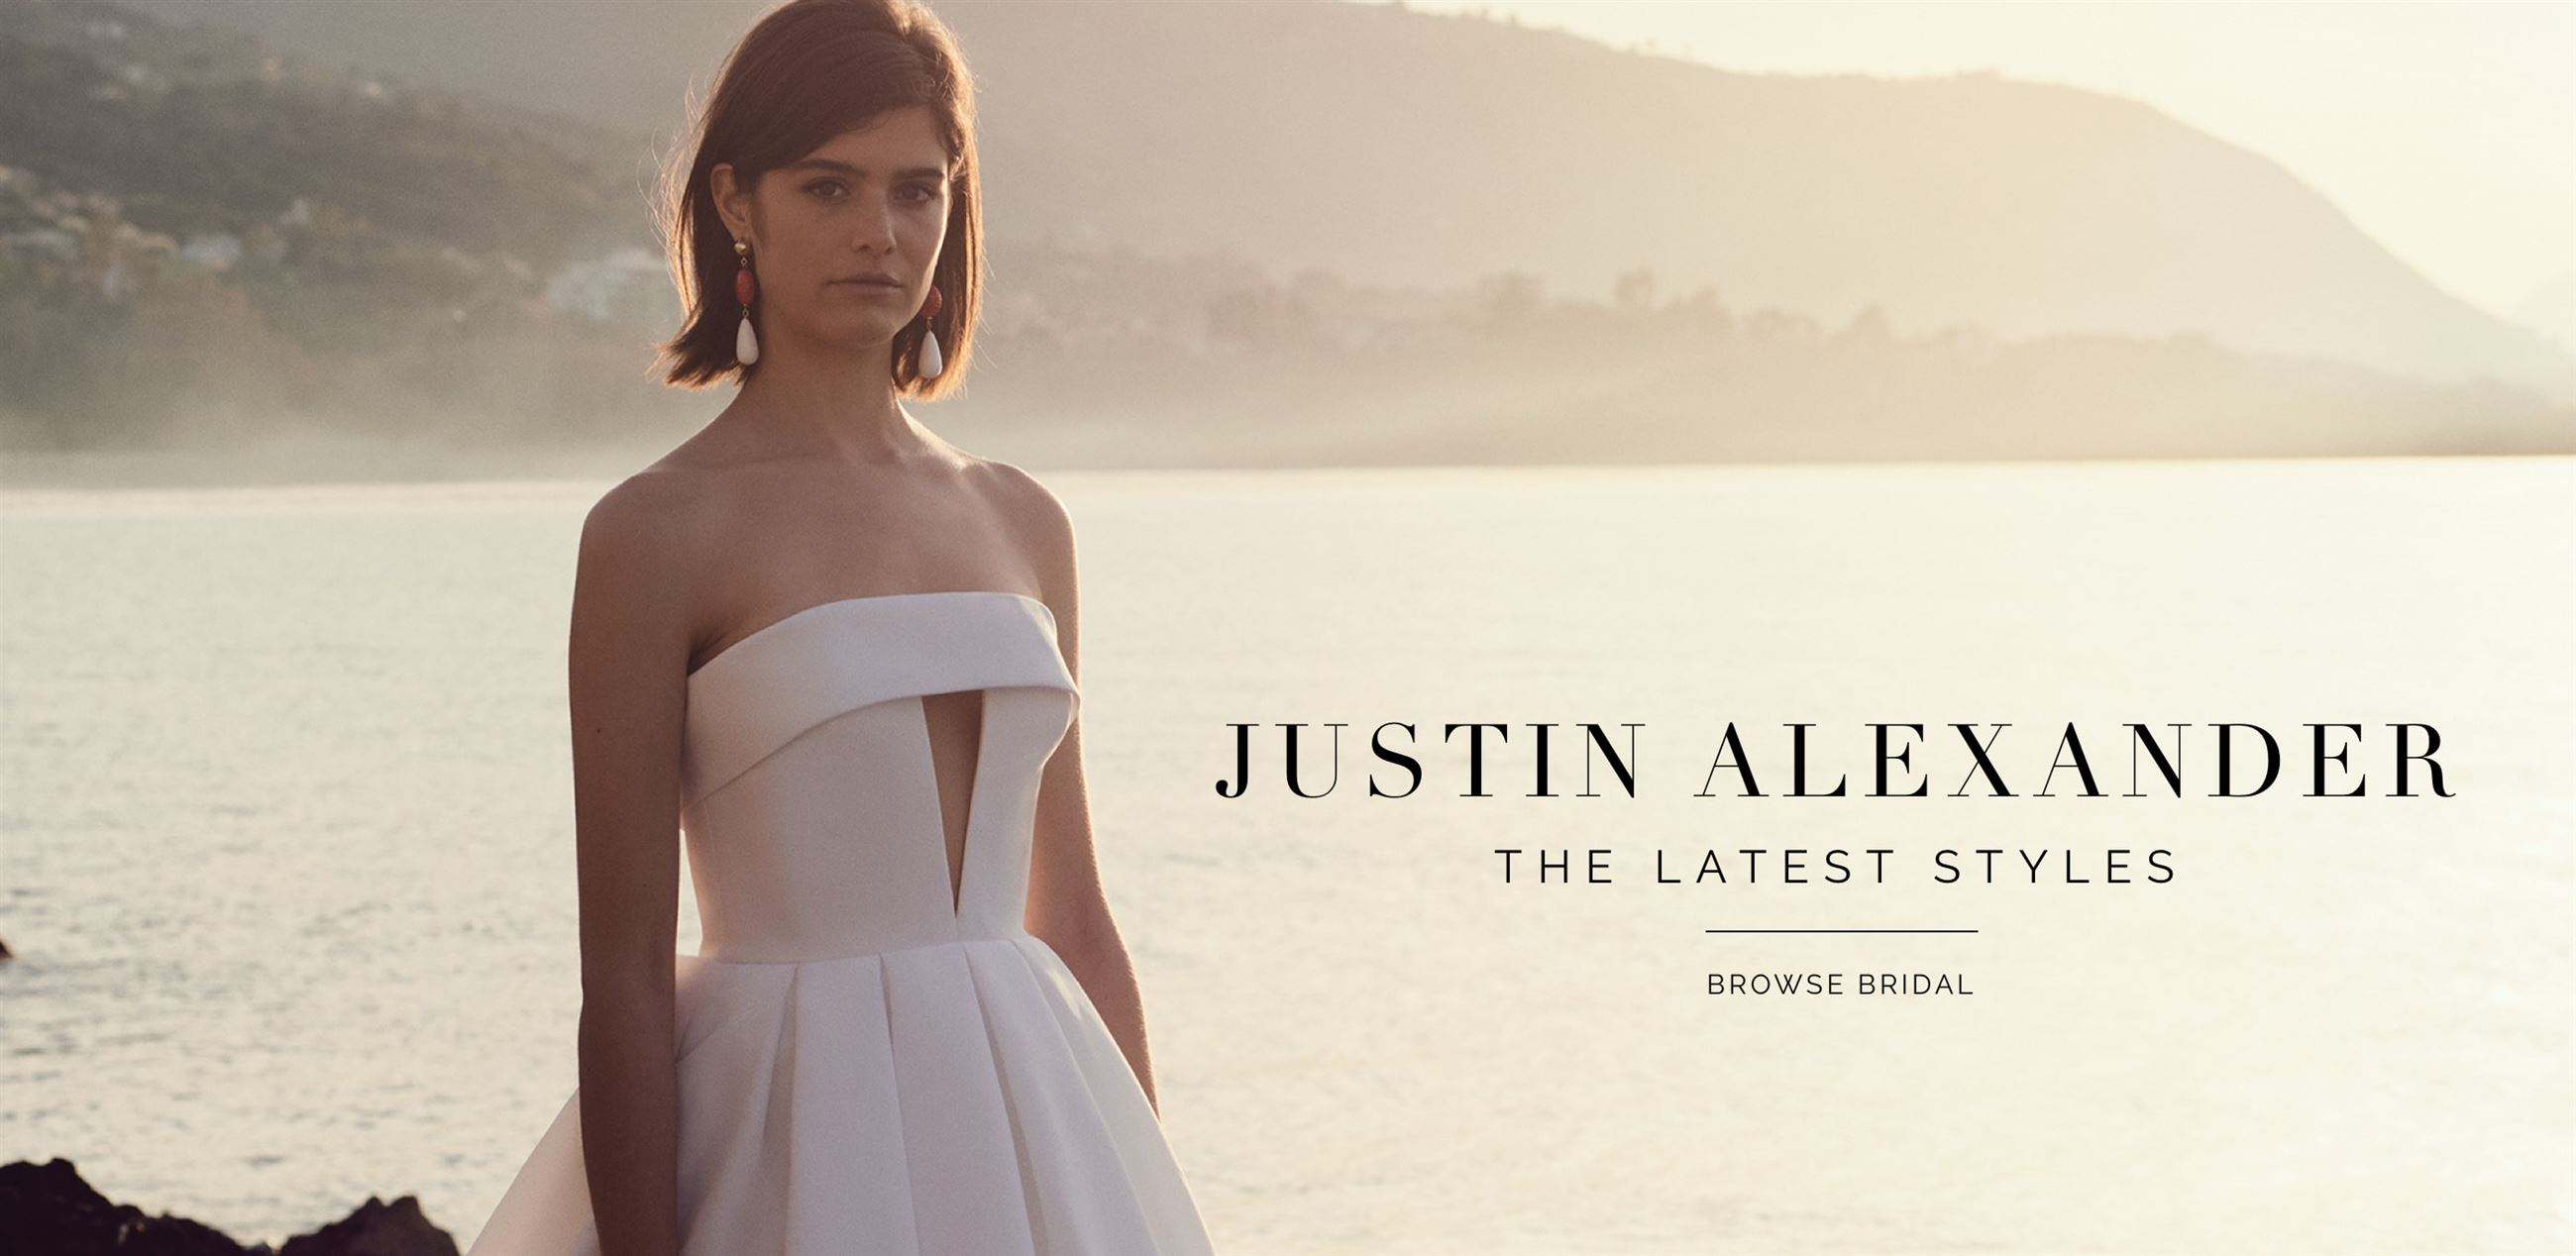 Banner for Justin Alexander latest styles